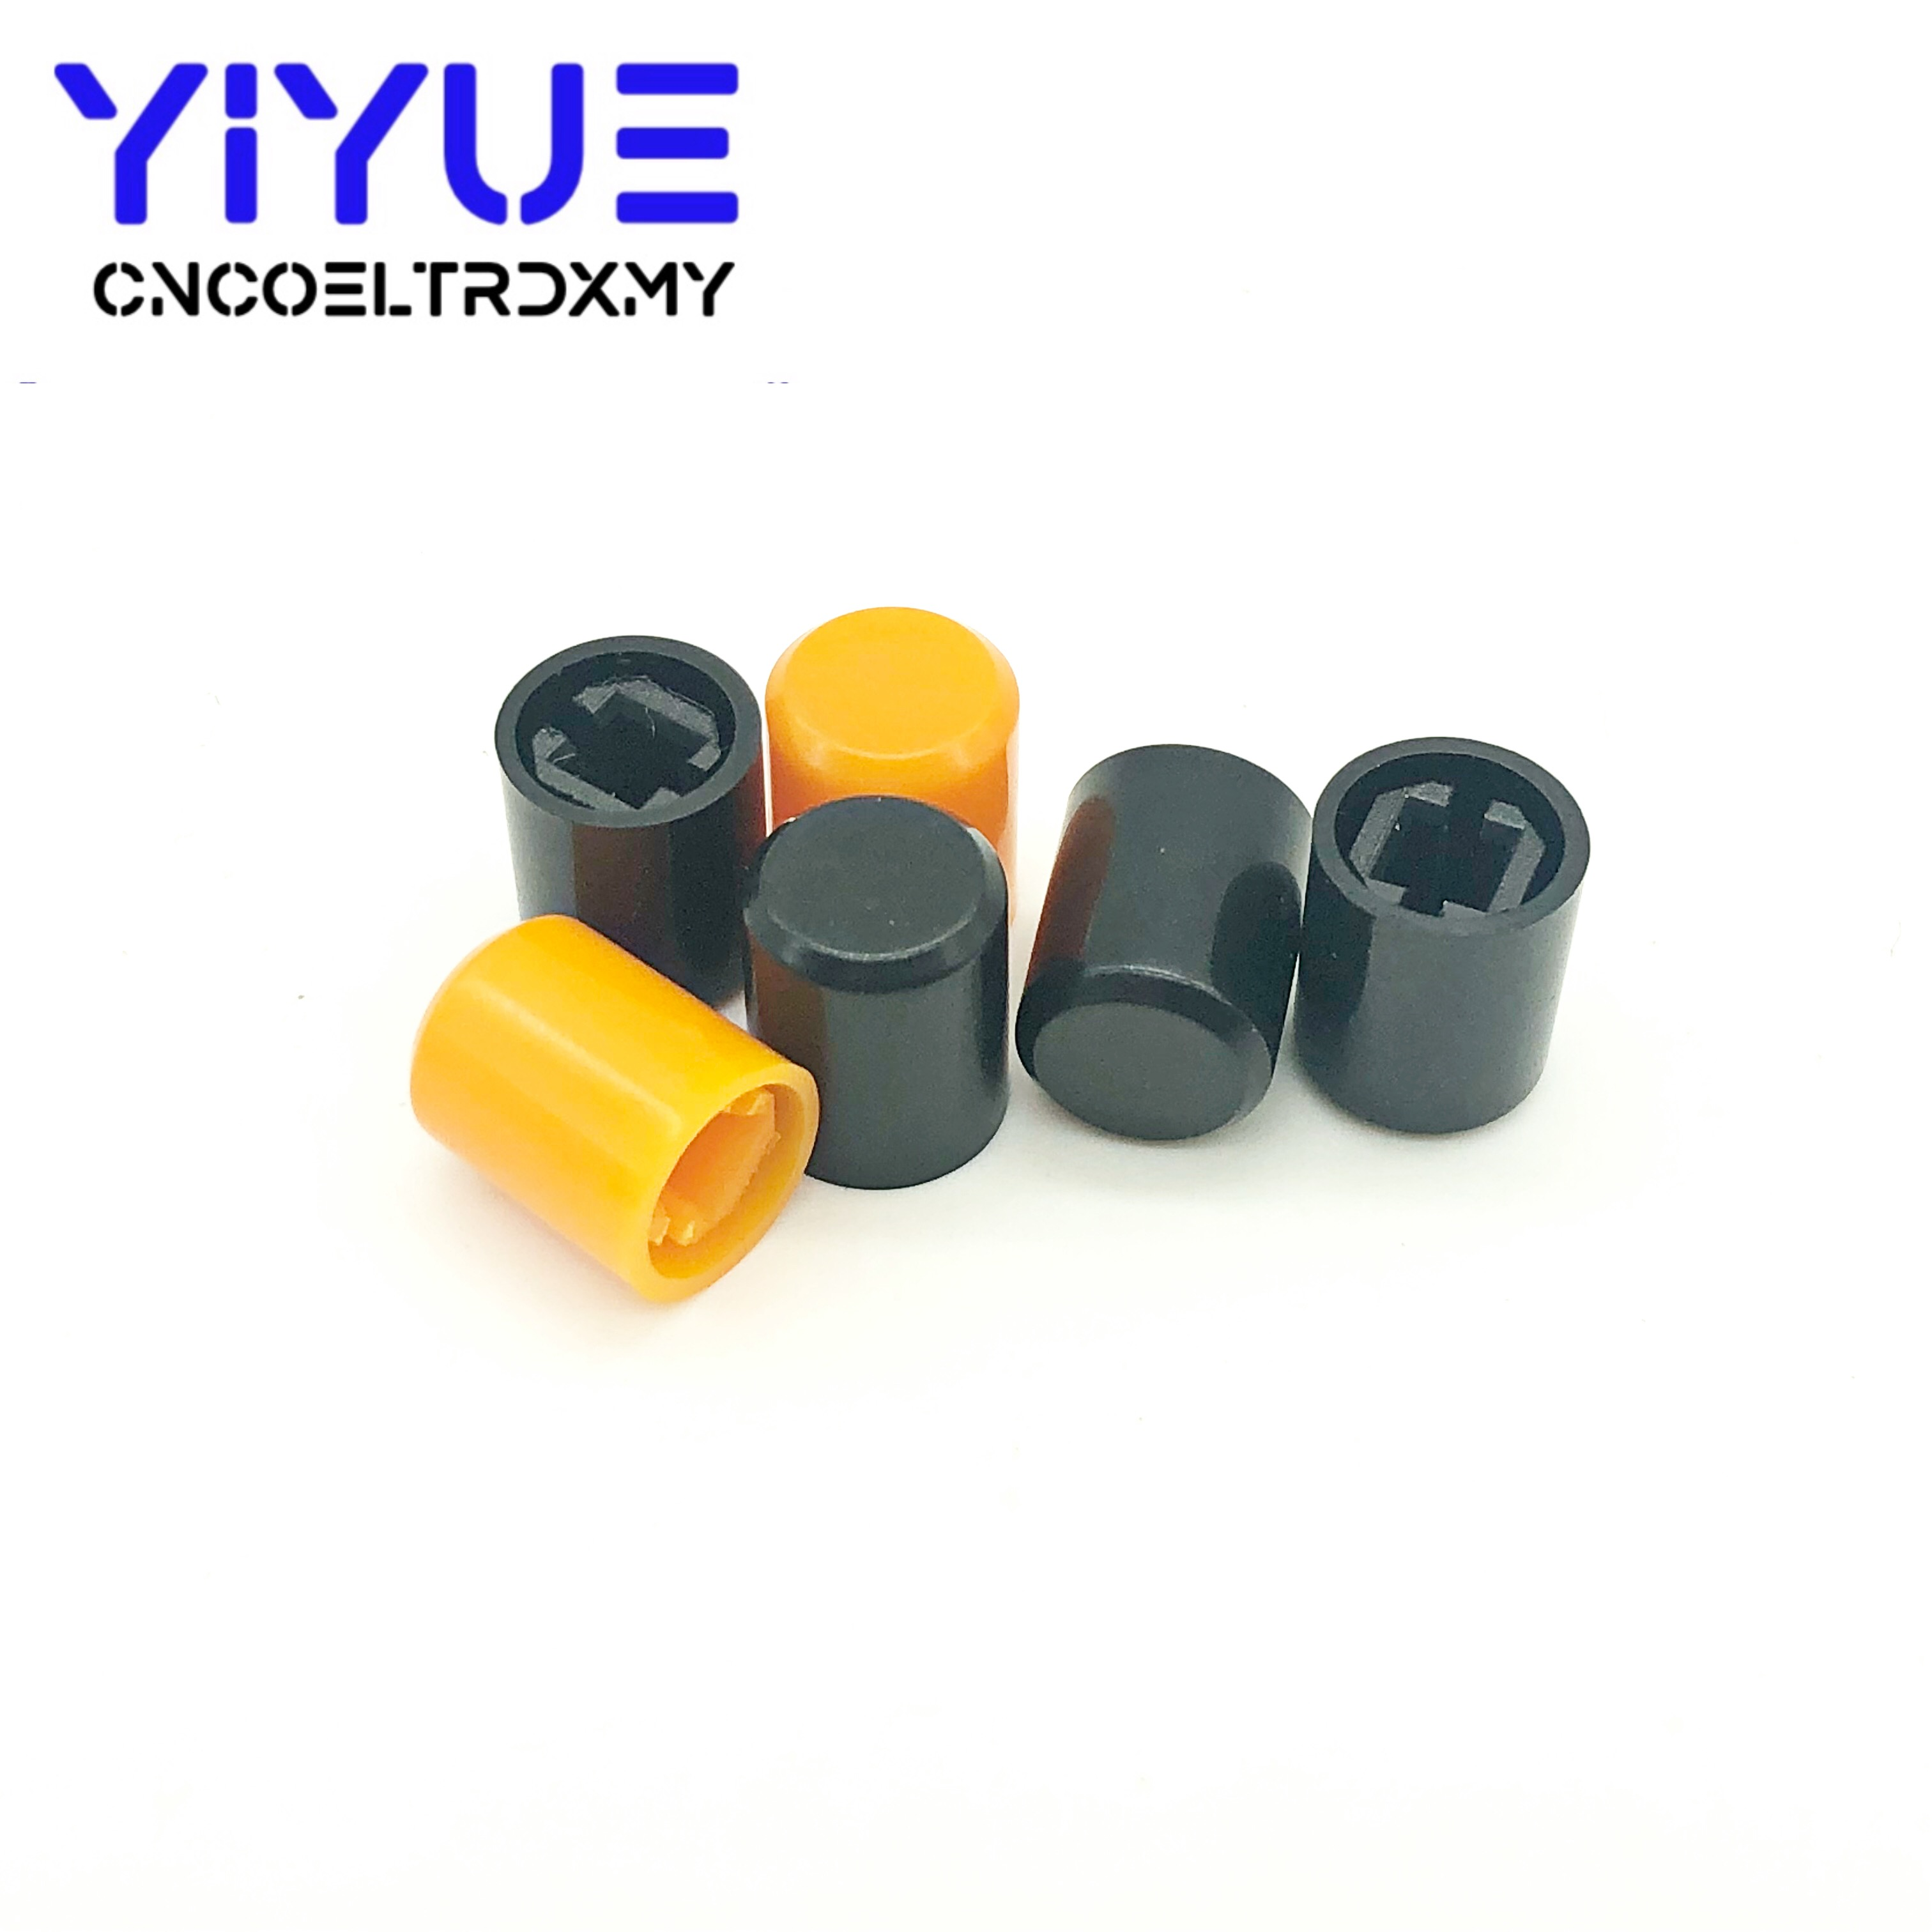 20Pcs Plastic Cap PS-22F03 Push Button Switch Lid Cover A03 A11 Direct Key Switch Cap For Button Switch High 10MM Orange Black